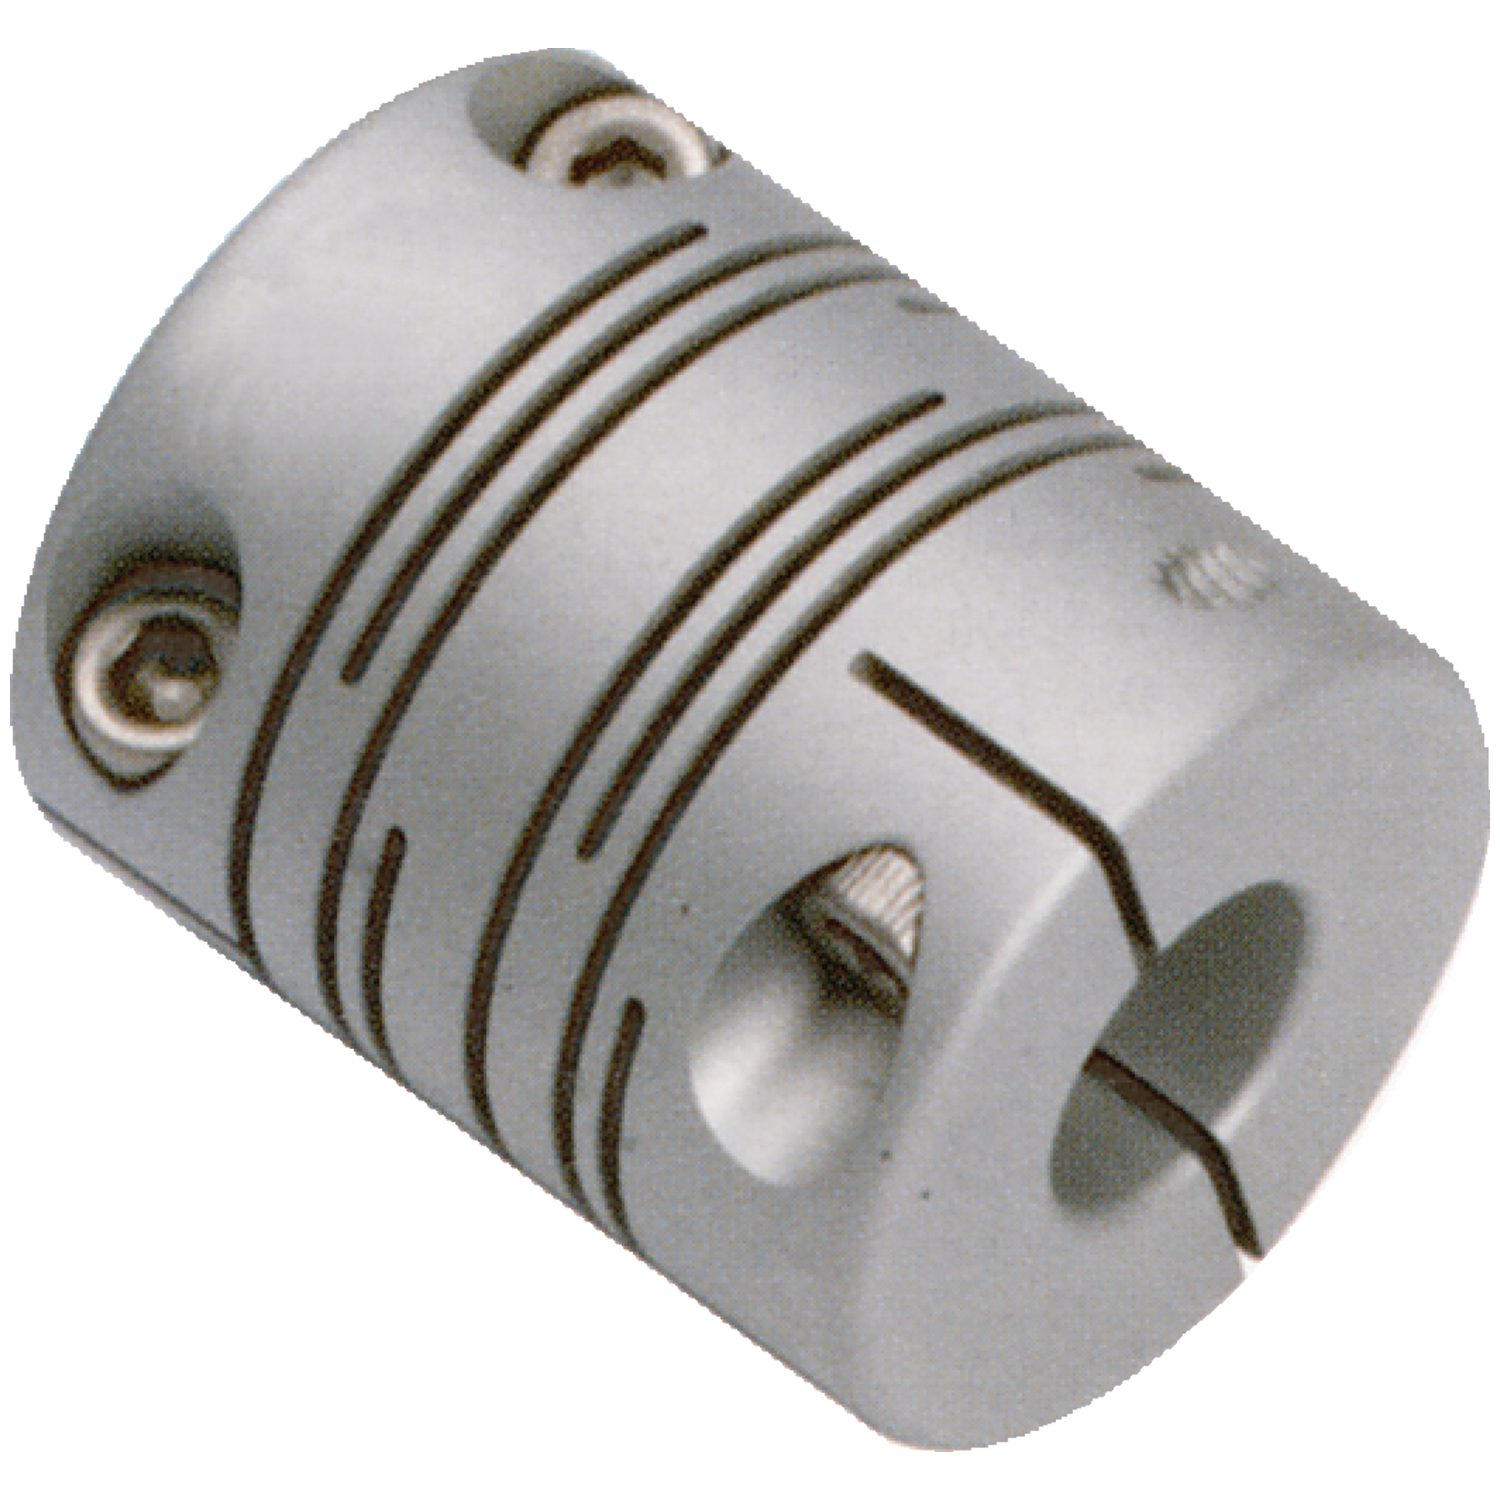 R3005 - Beamed Coupling - six beam